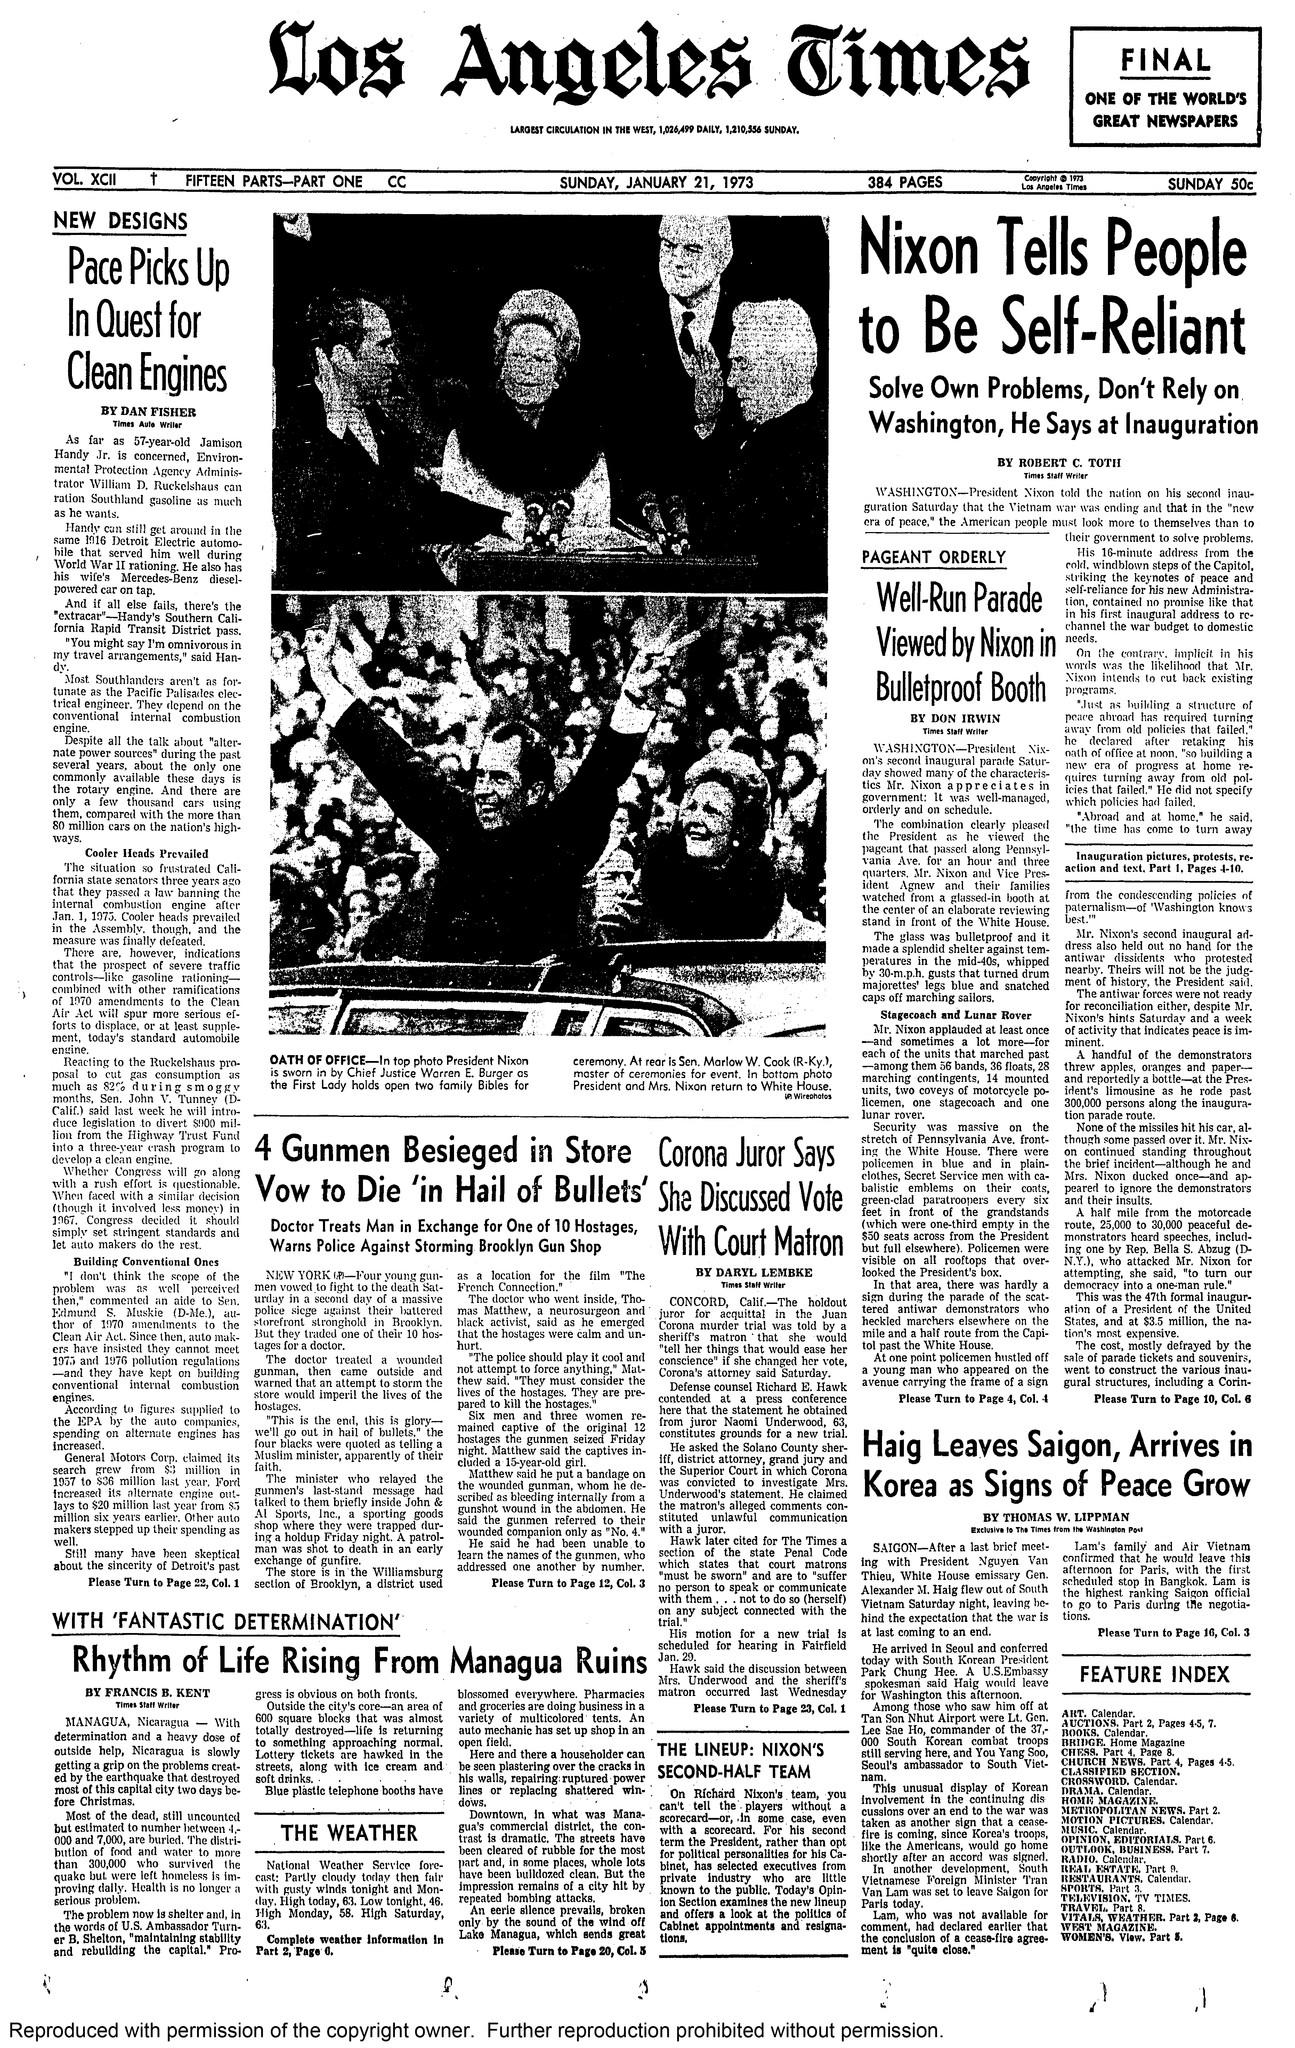 The front page of the Los Angeles Times on Jan. 21, 1973.